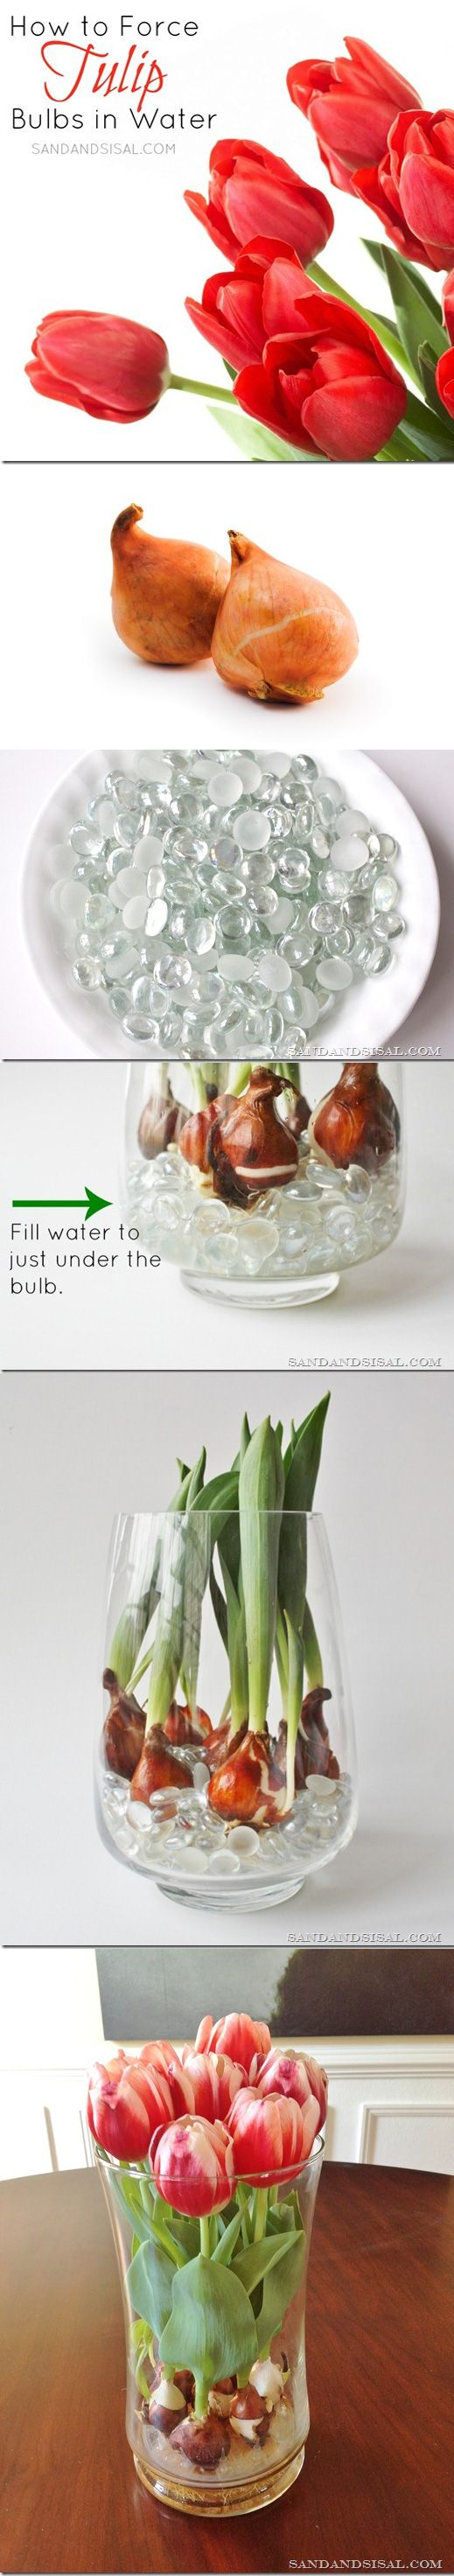 ❧ How to Force Tulip Bulbs in Water